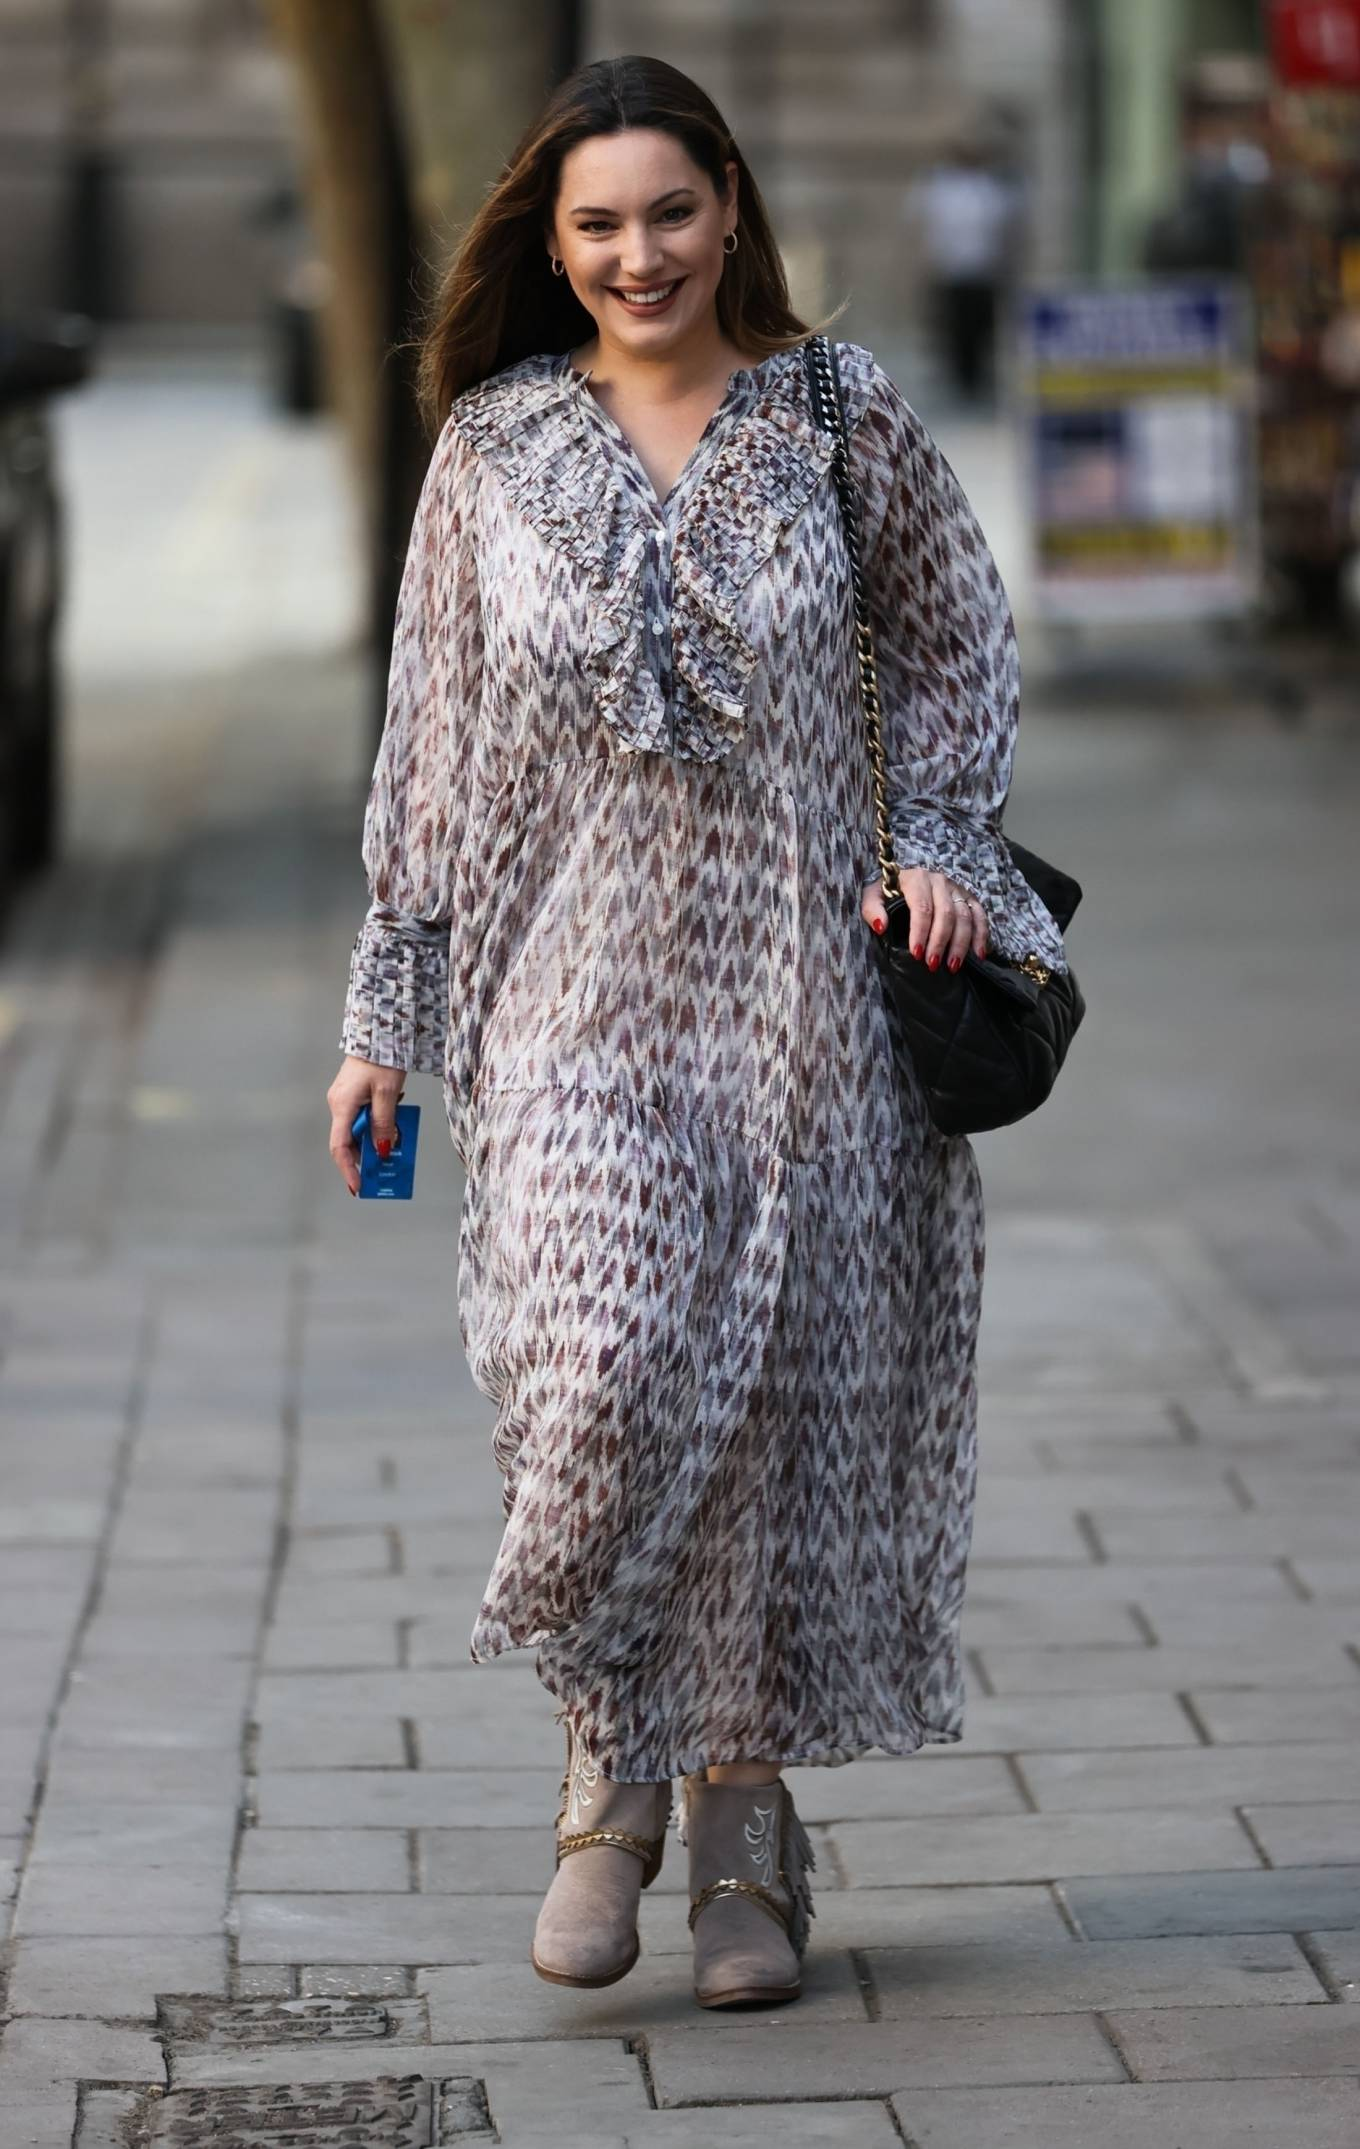 Kelly Brook - In a long flowing dress at the Heart Radio Studios in London